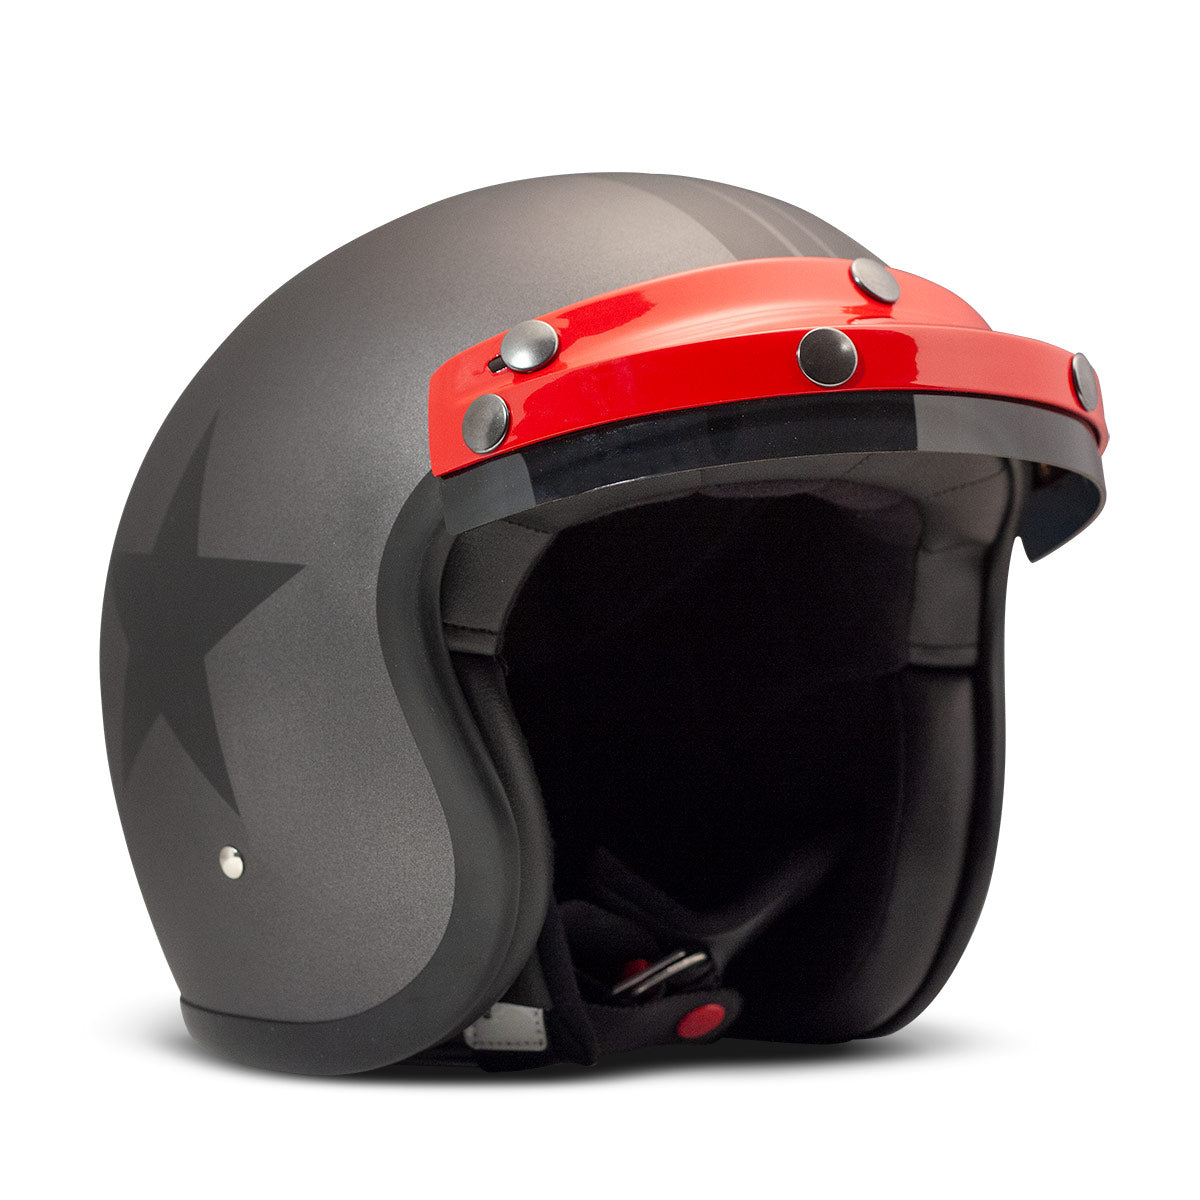 Visera DMD Racing Peak